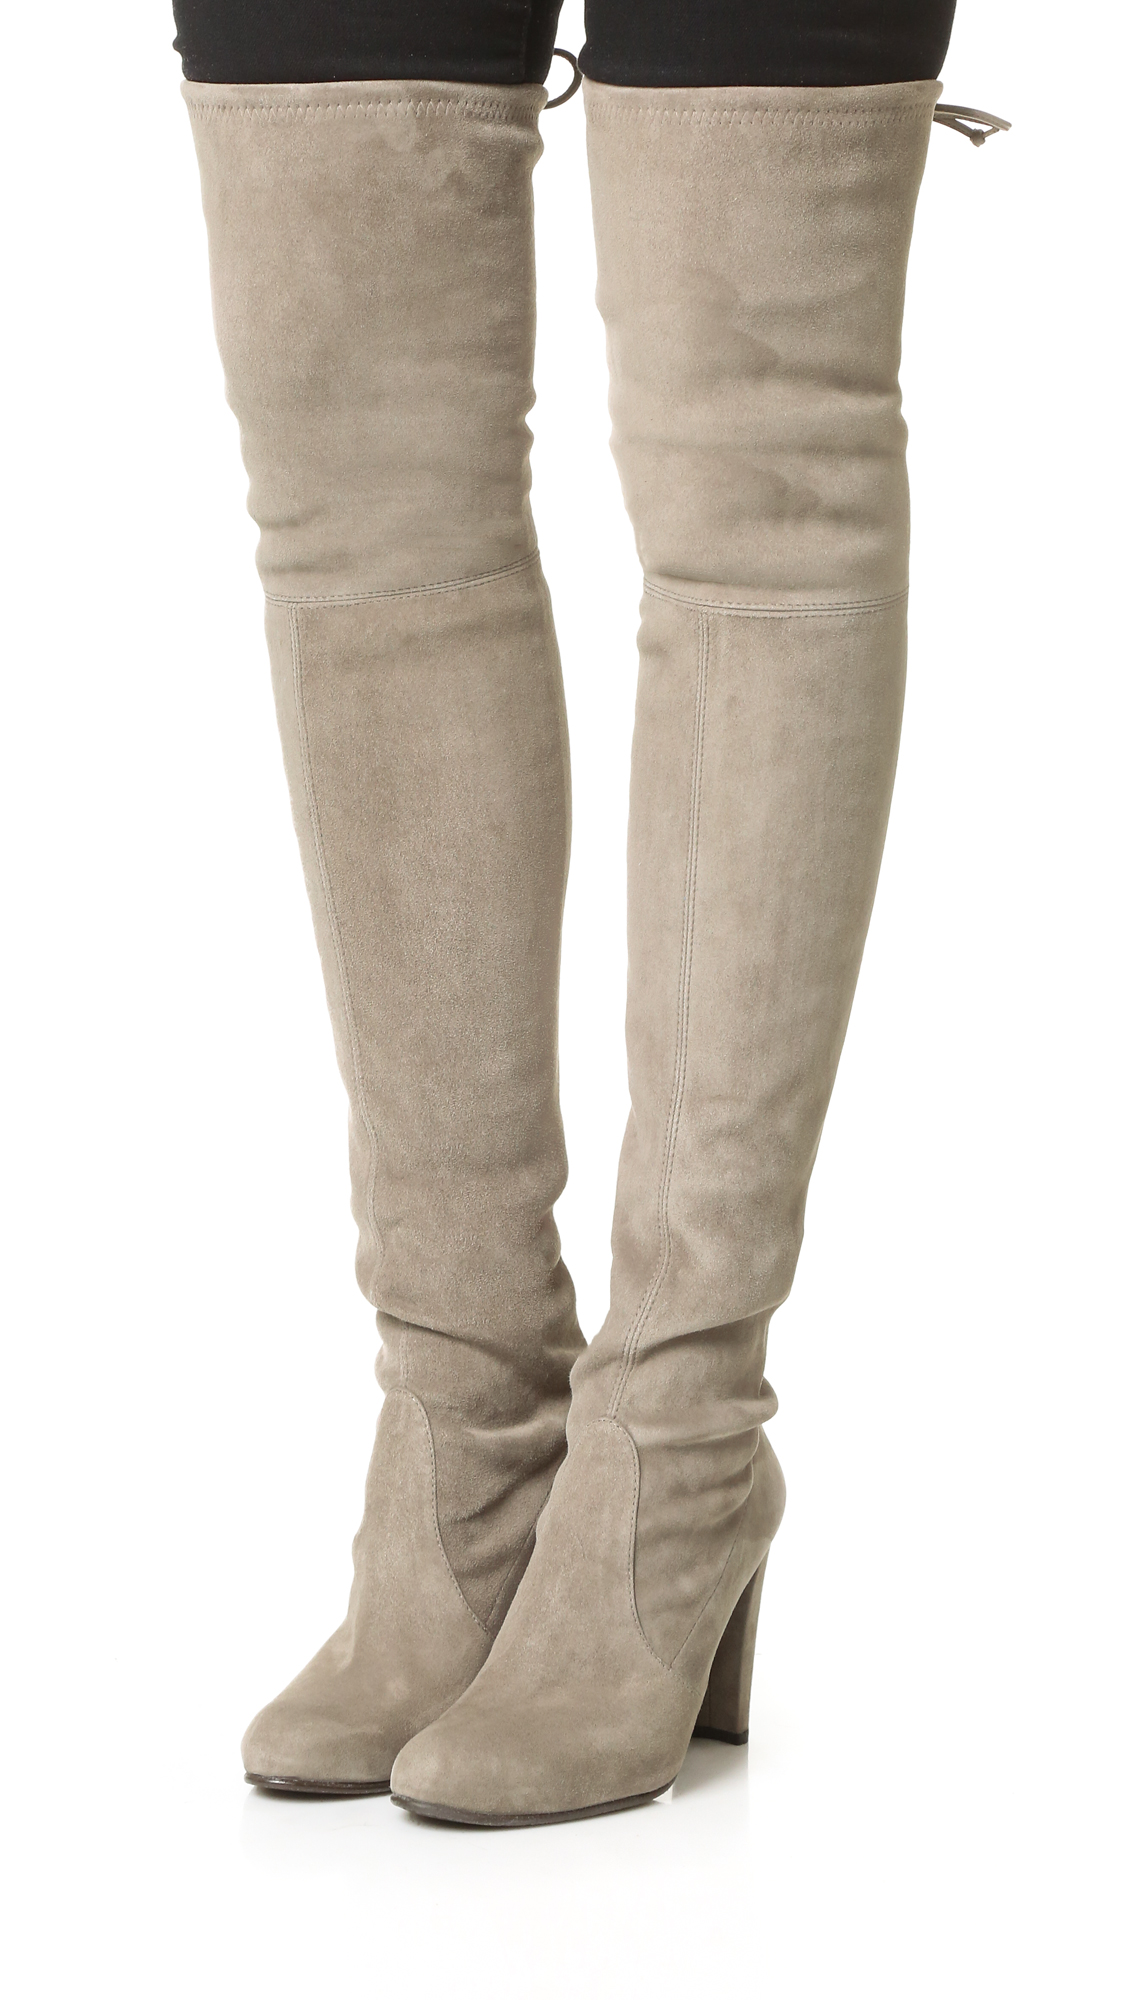 c9dd6d26be6 Stuart Weitzman Highland Over the Knee Boots